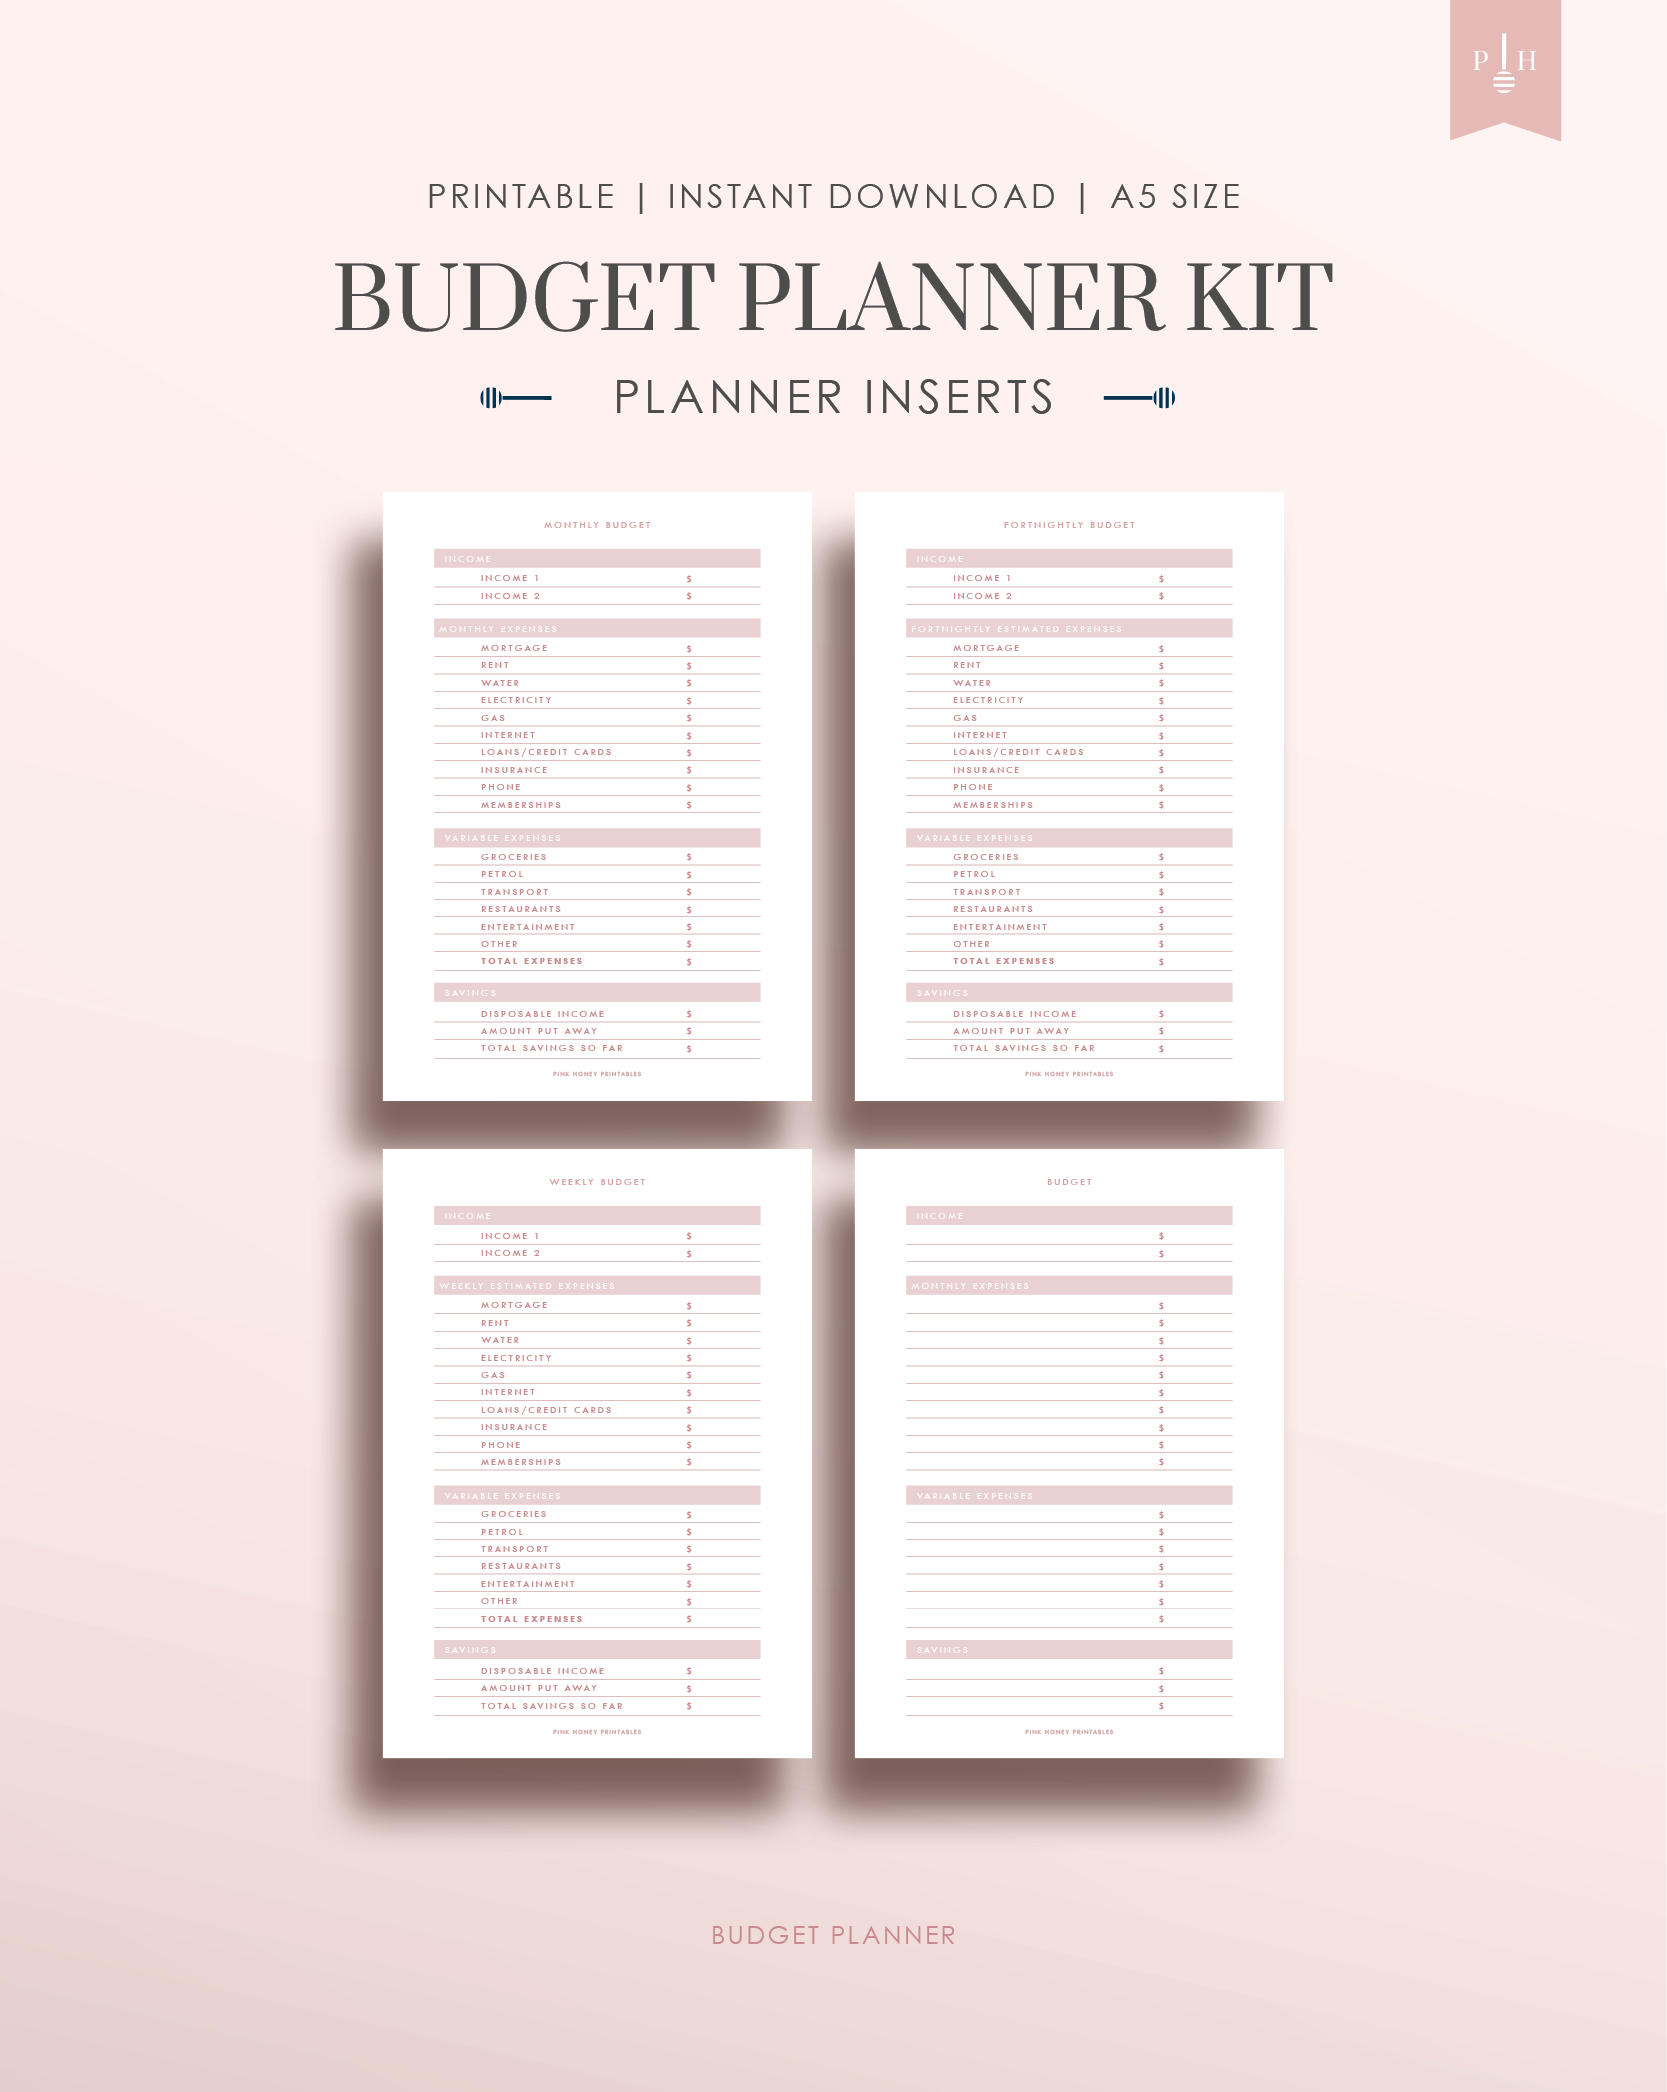 Financial Planner Kit Monthly Budget Binder Household